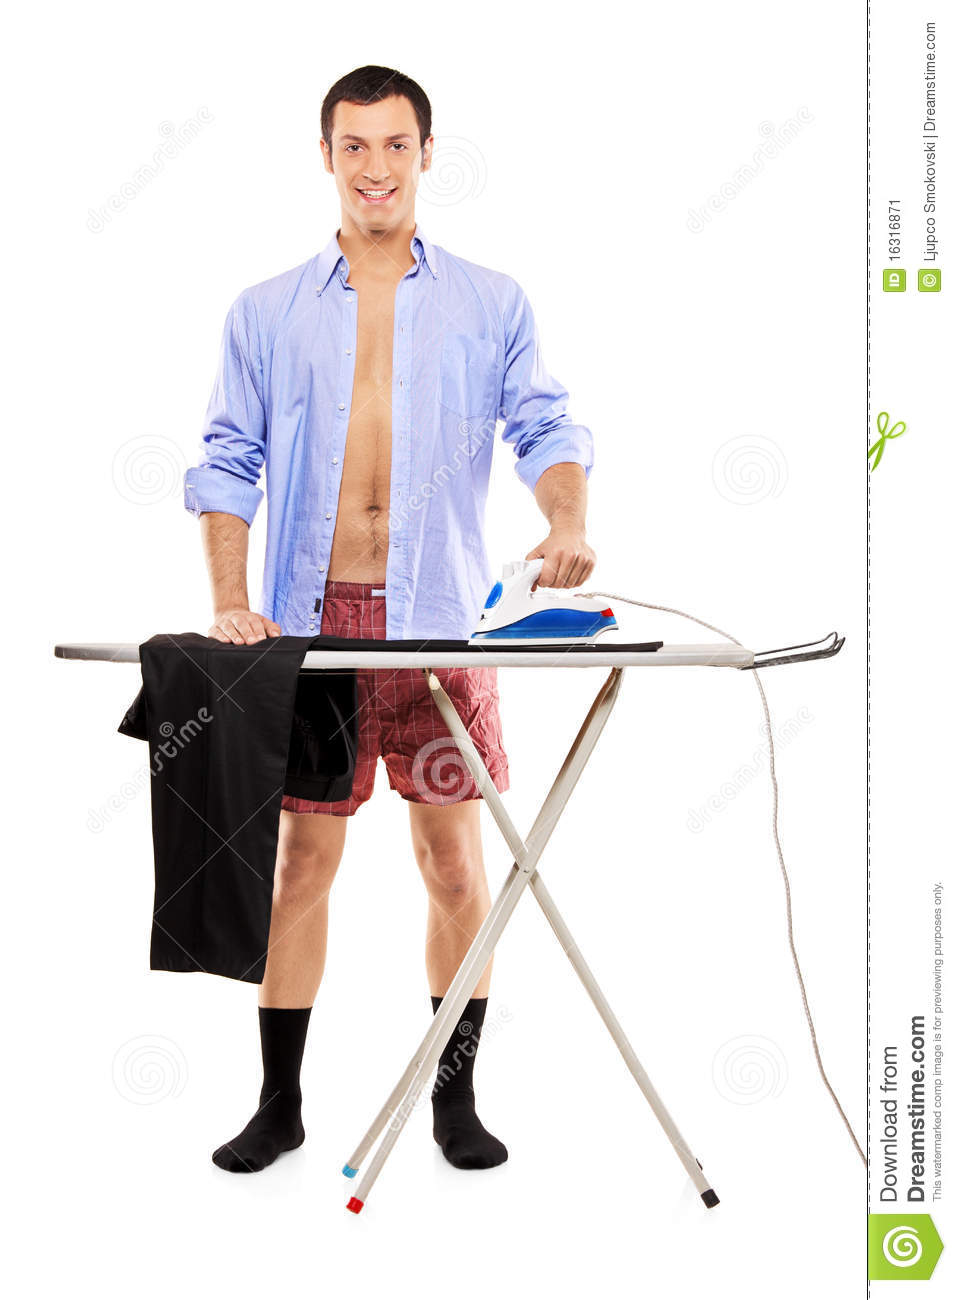 full length portrait of a man ironing stock image image